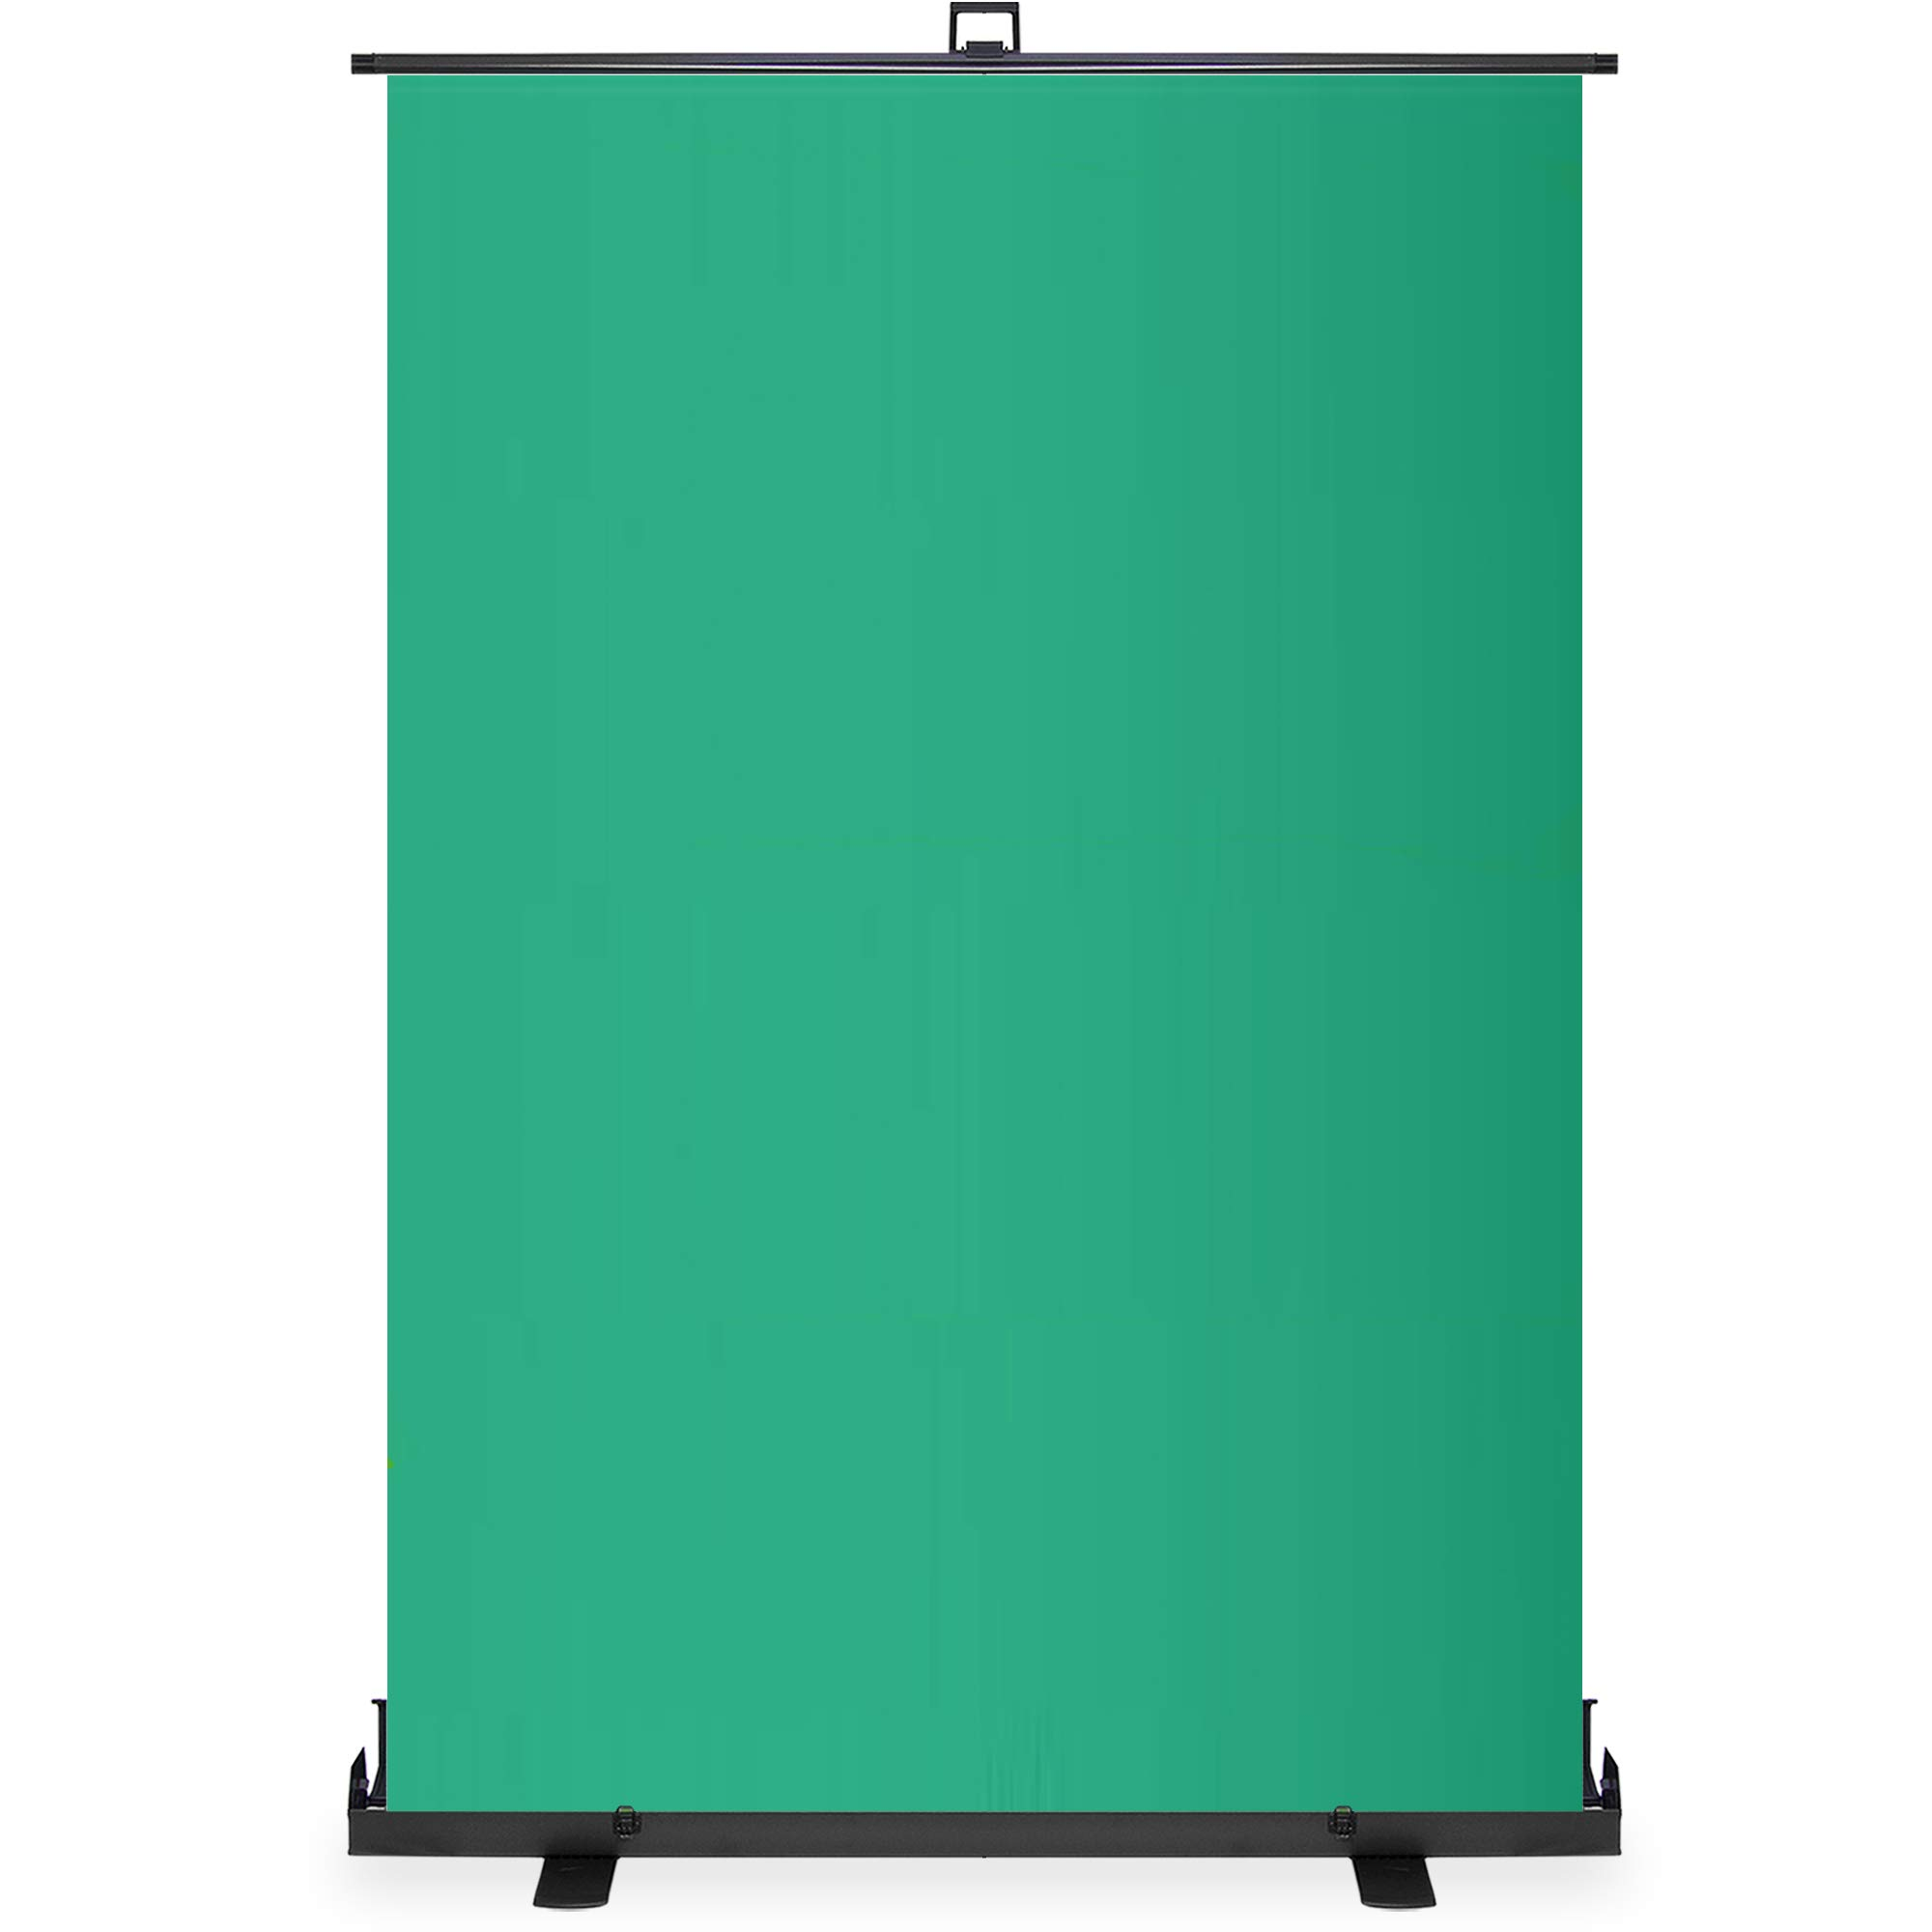 KHOMO GEAR Jumbo Size 55'' x 82'' Green Screen Collapsible Pull-Up Extra Large Streaming Portable Backdrop Setup with Auto-Locking Frame by KHOMO GEAR